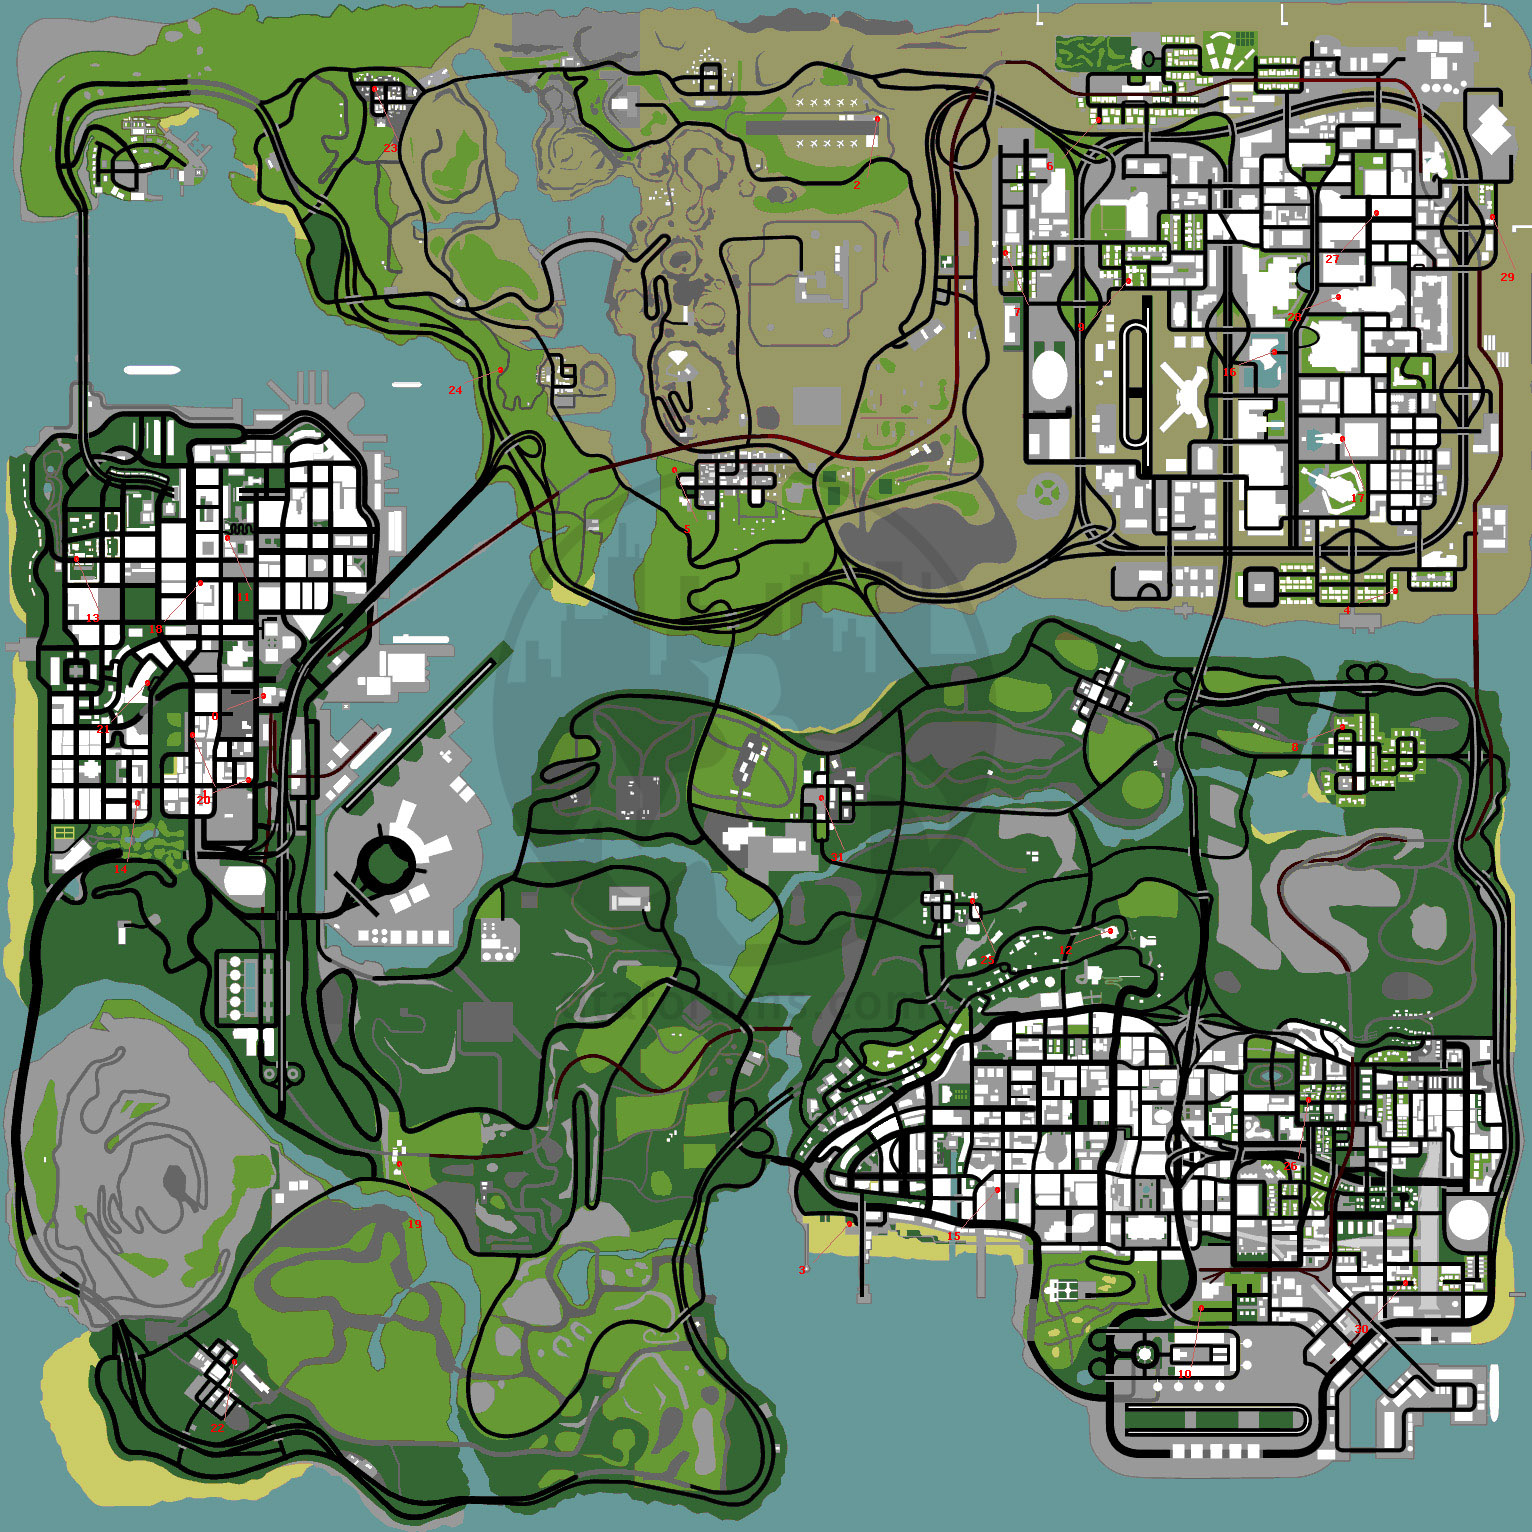 Grand theft auto san andreas cheats codes cheat codes Good house map